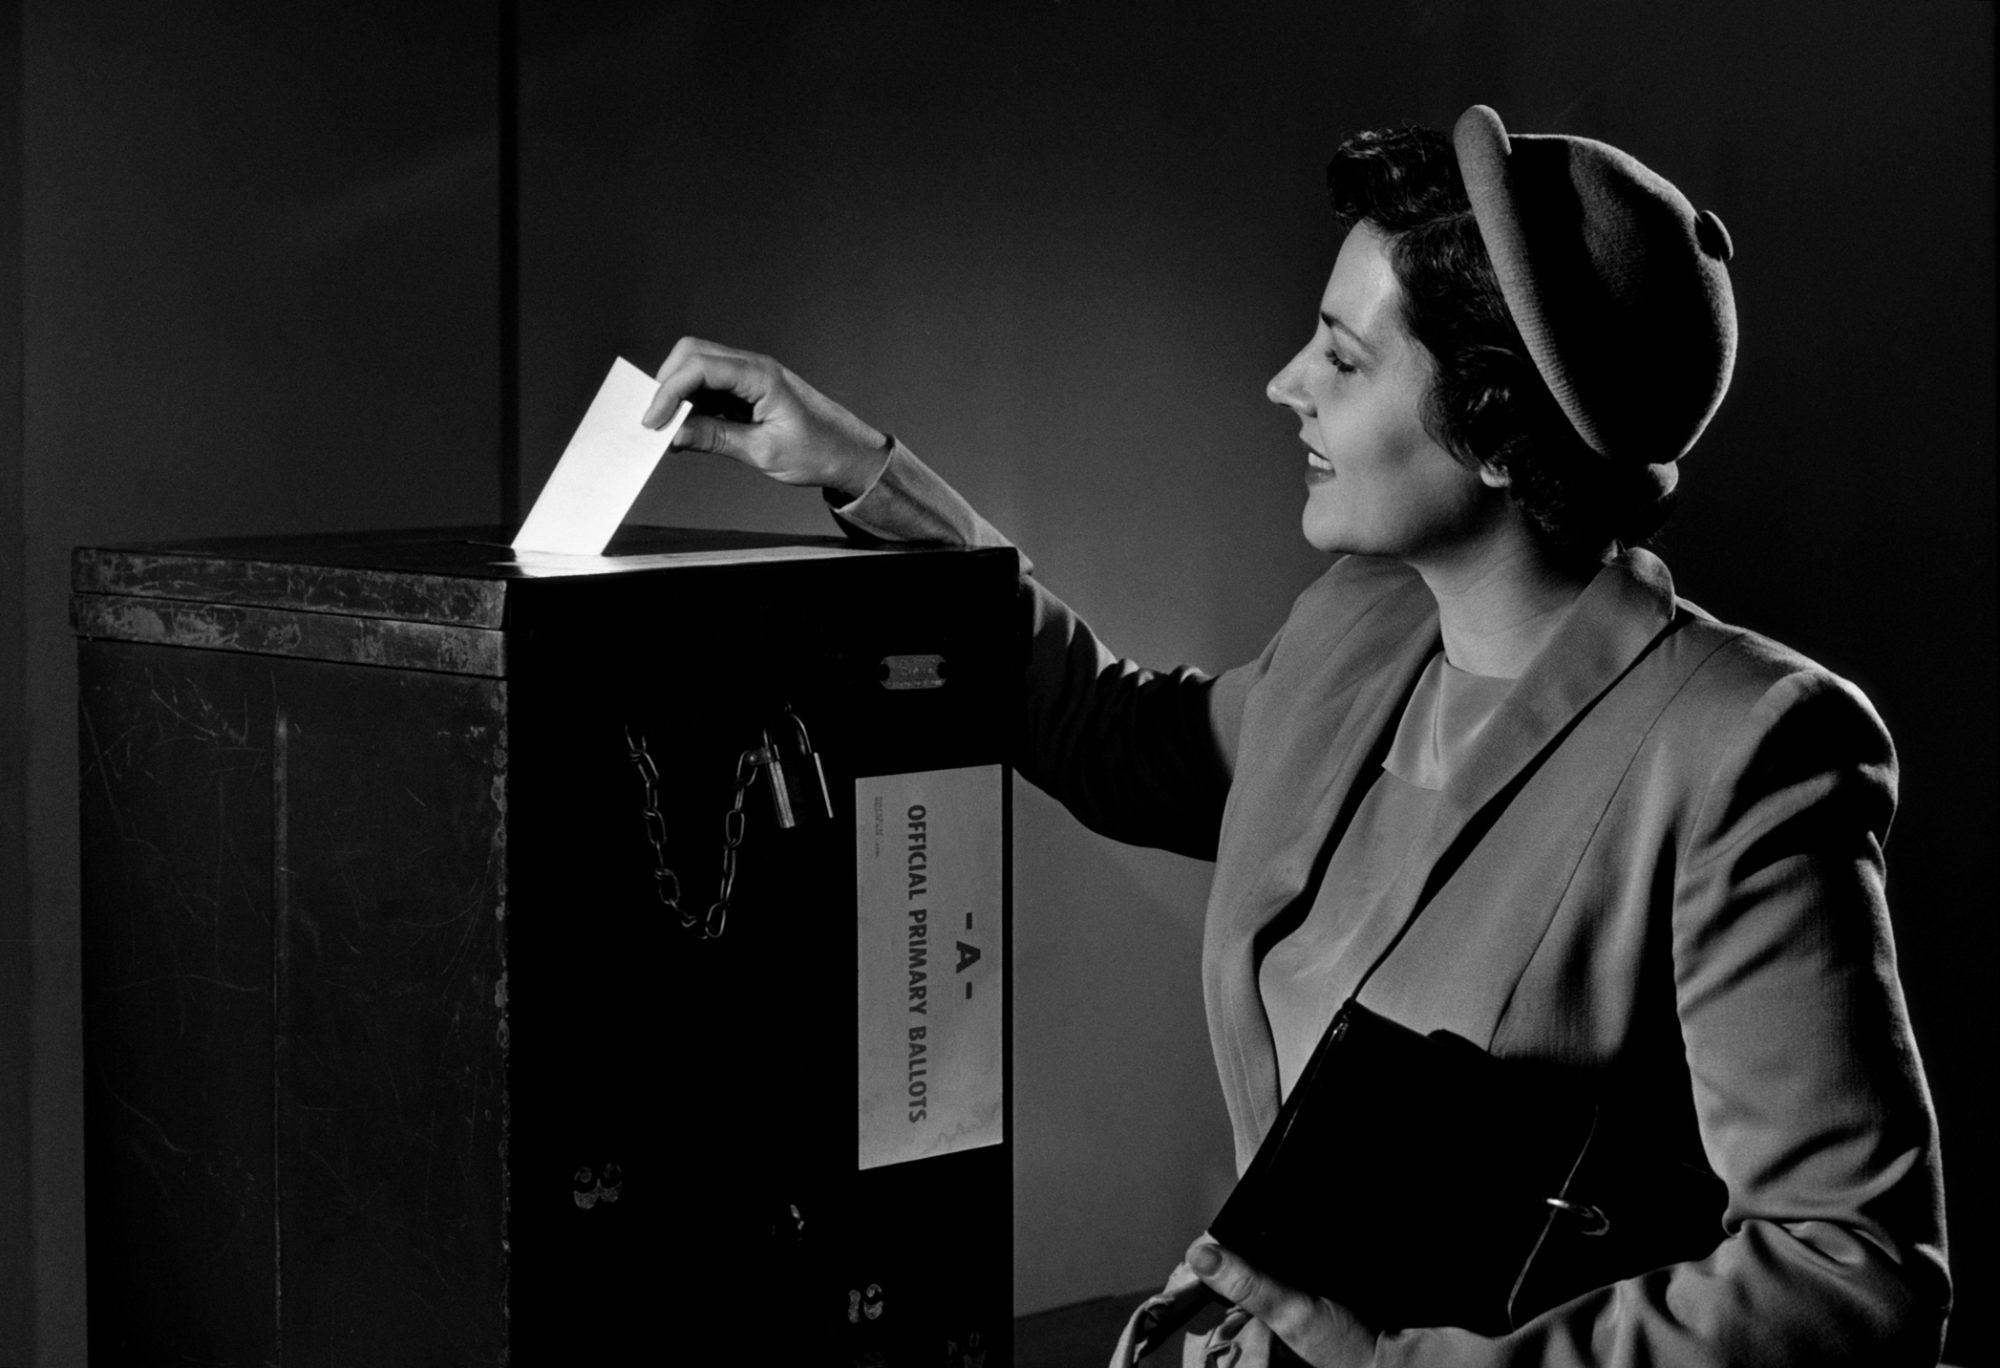 WOMAN VOTING IN THE 1950S